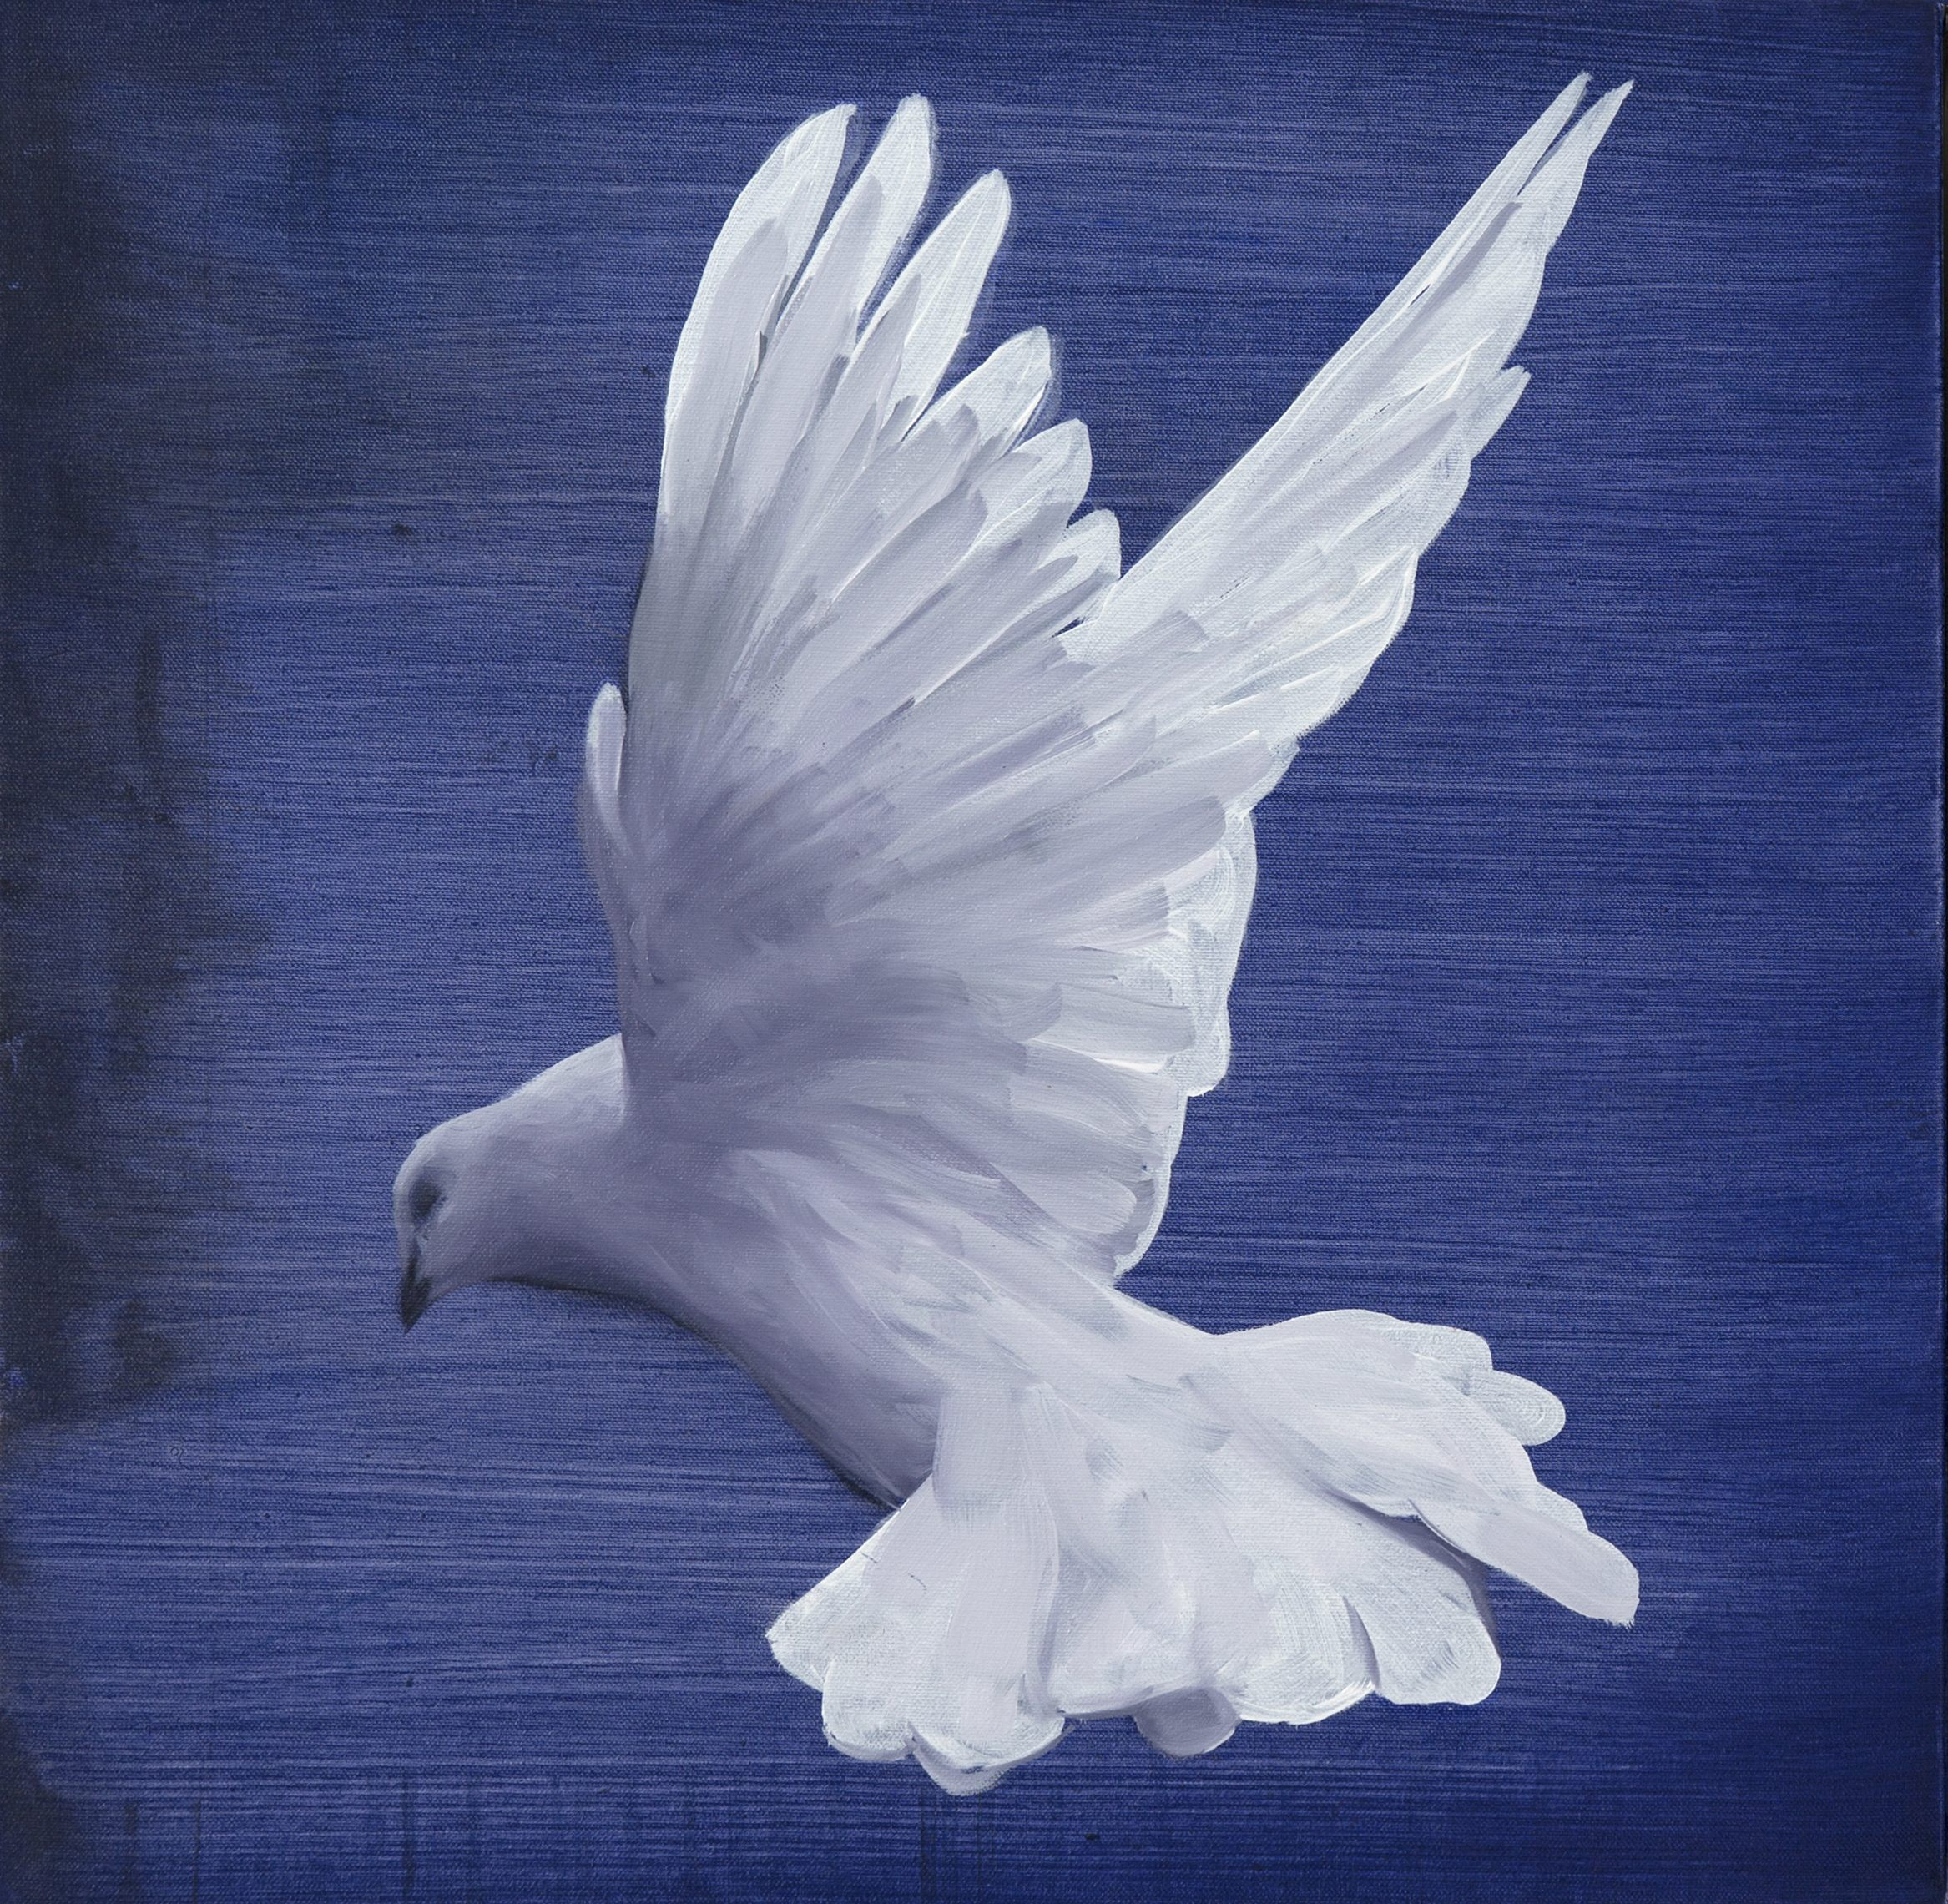 Dove II by Angus McDonald